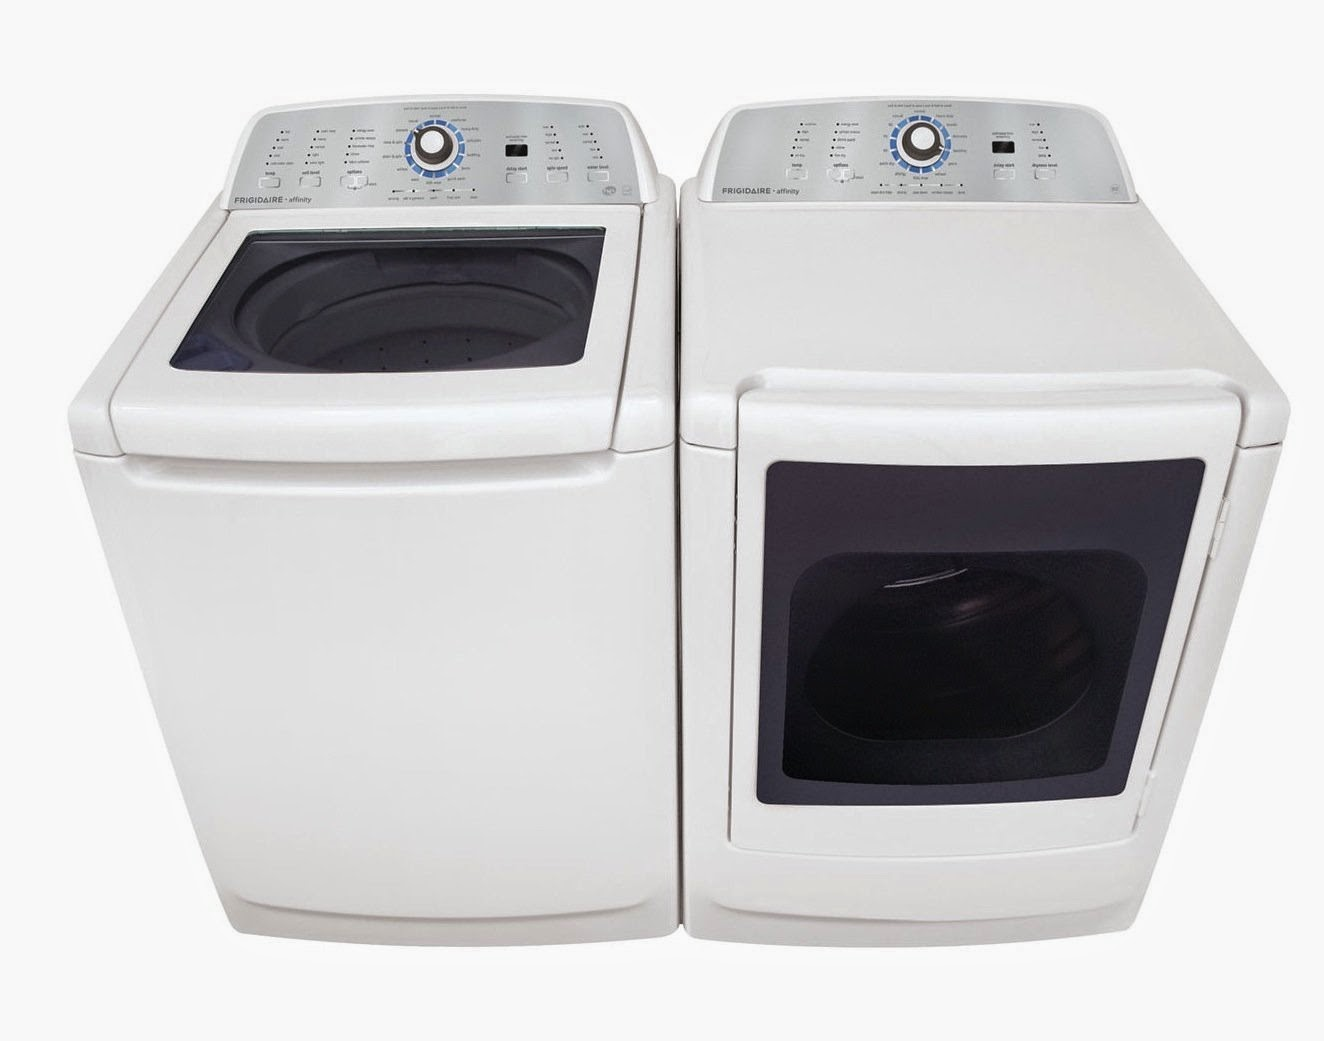 frigidaire white washer and dryer set - Small Washer And Dryer